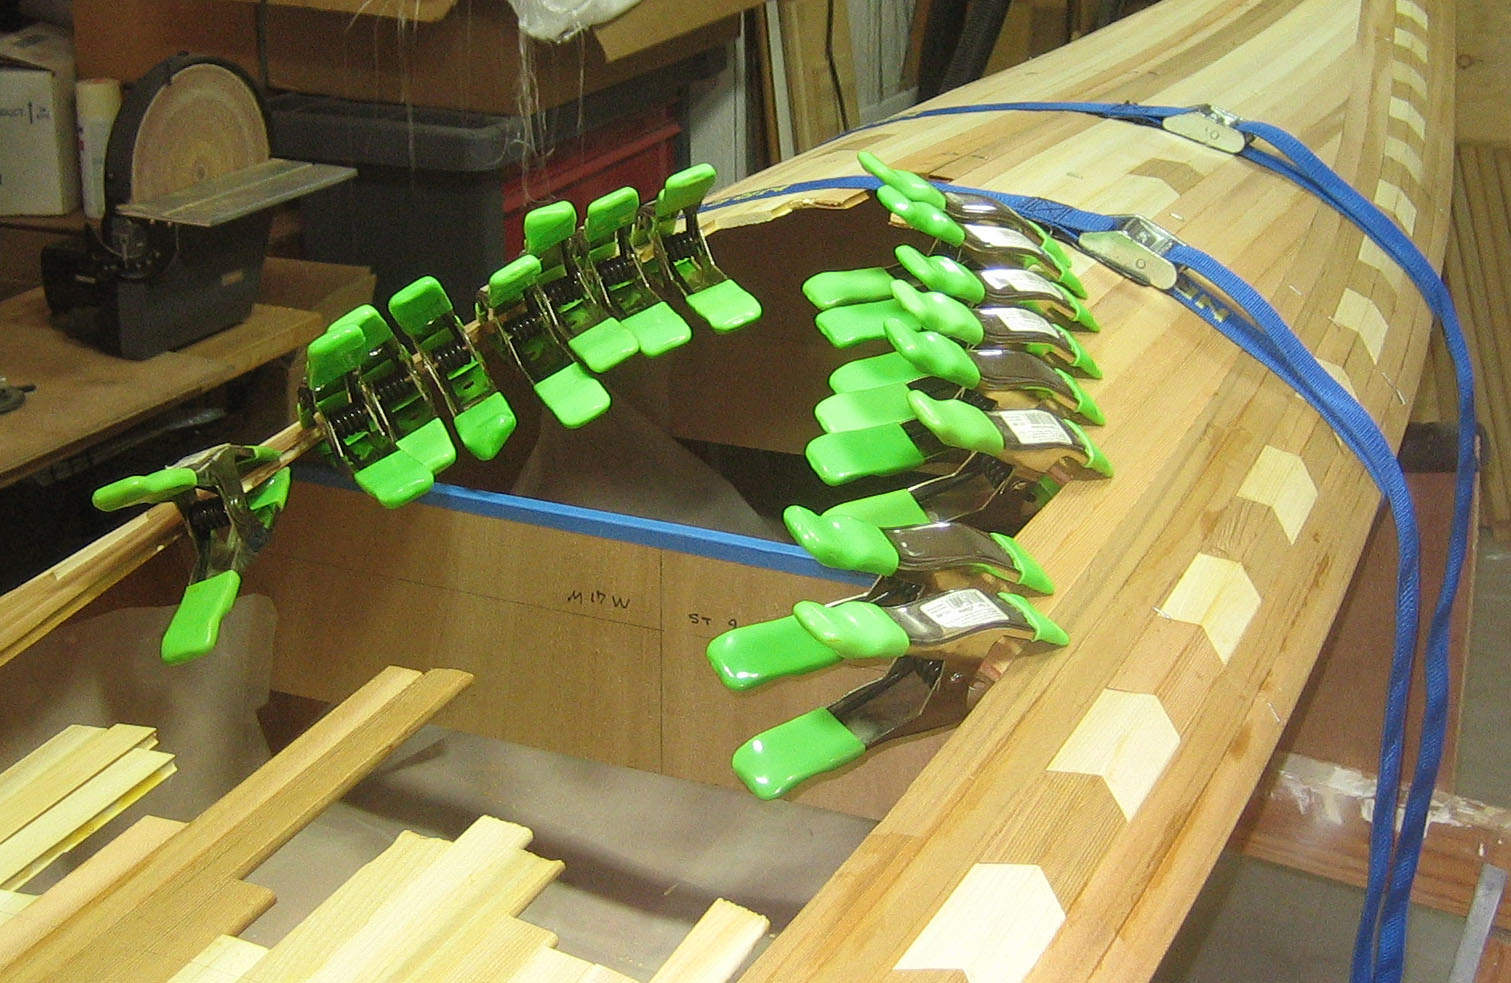 More Clamps